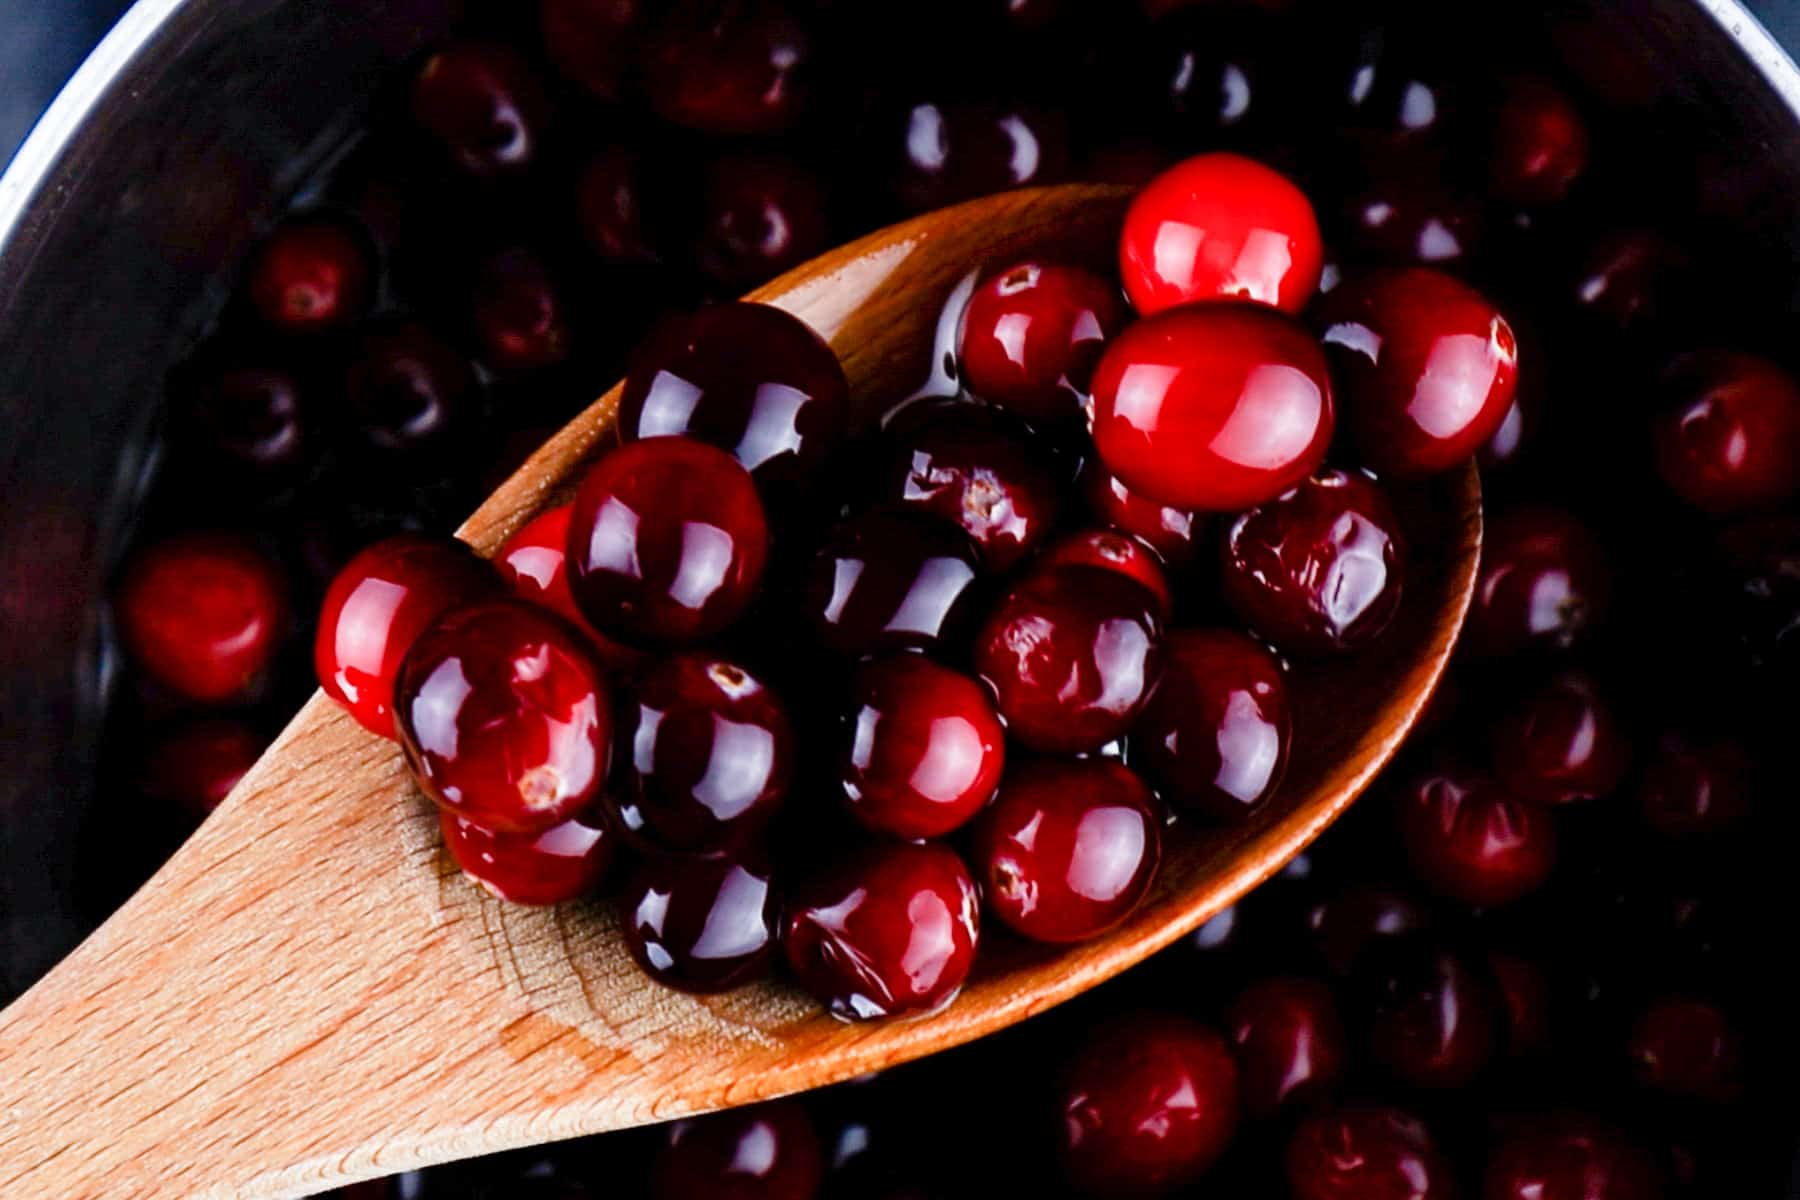 coated cranberries in sugar syrup on wooden spoon